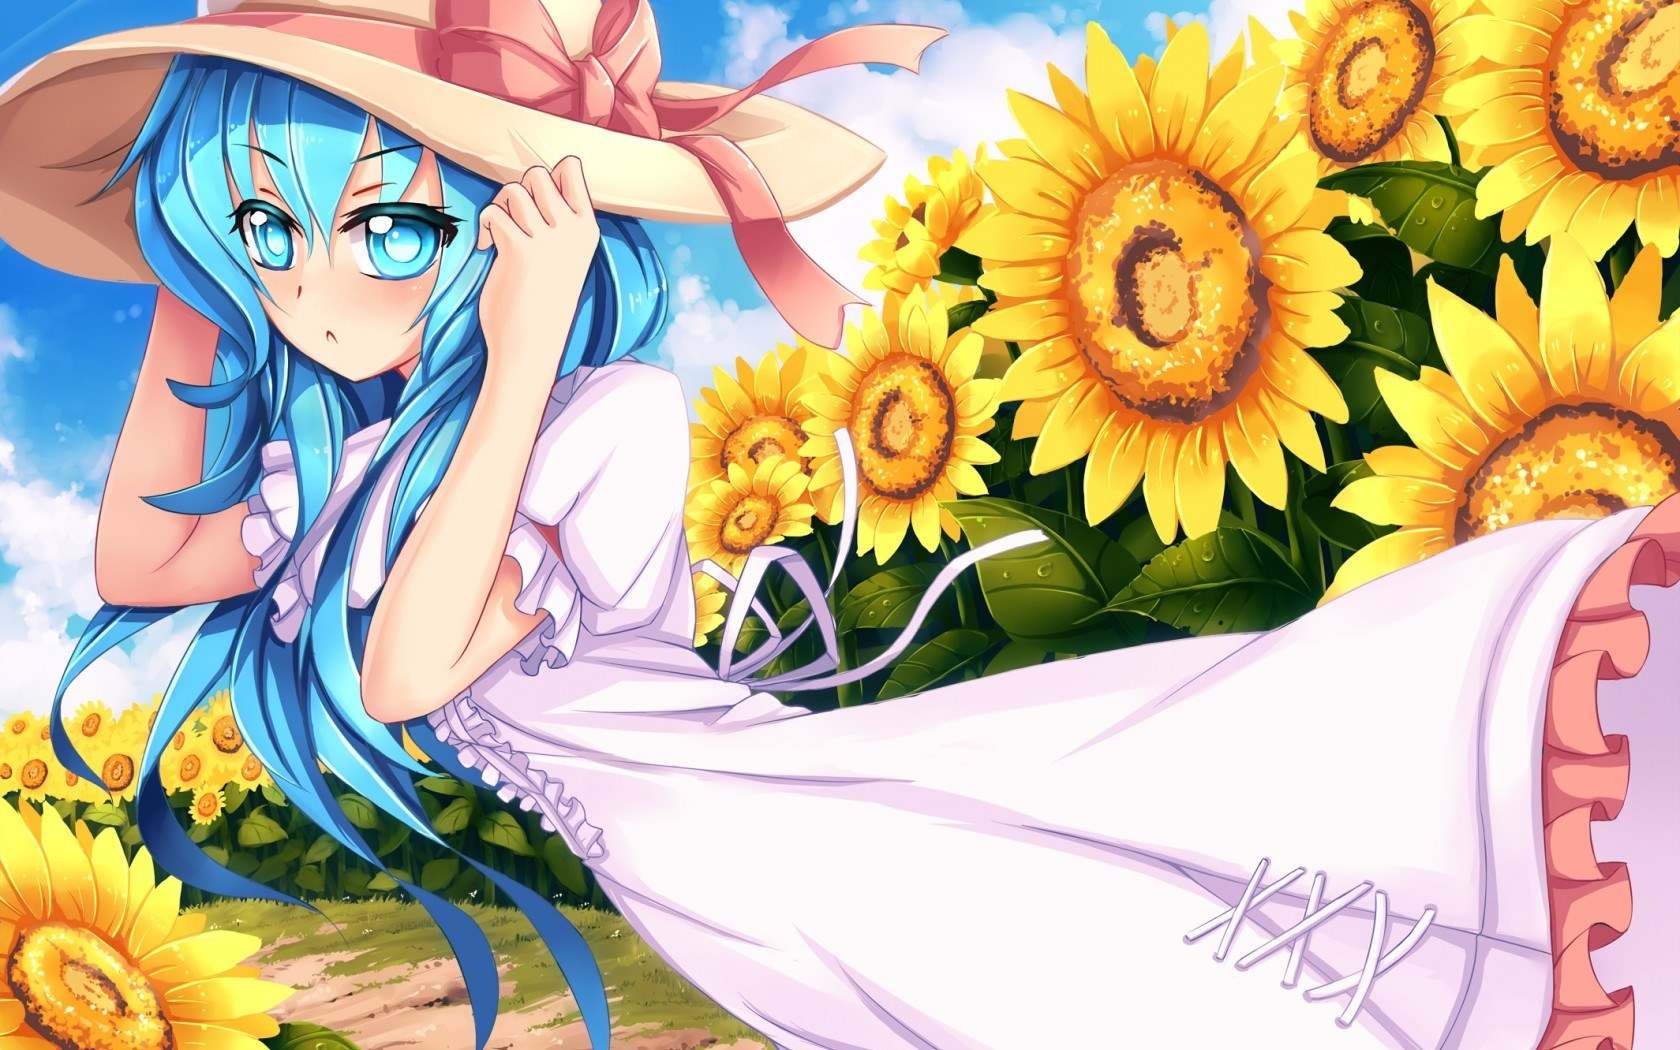 Art Girl Look Hat Wind Field Sunflowers Anime